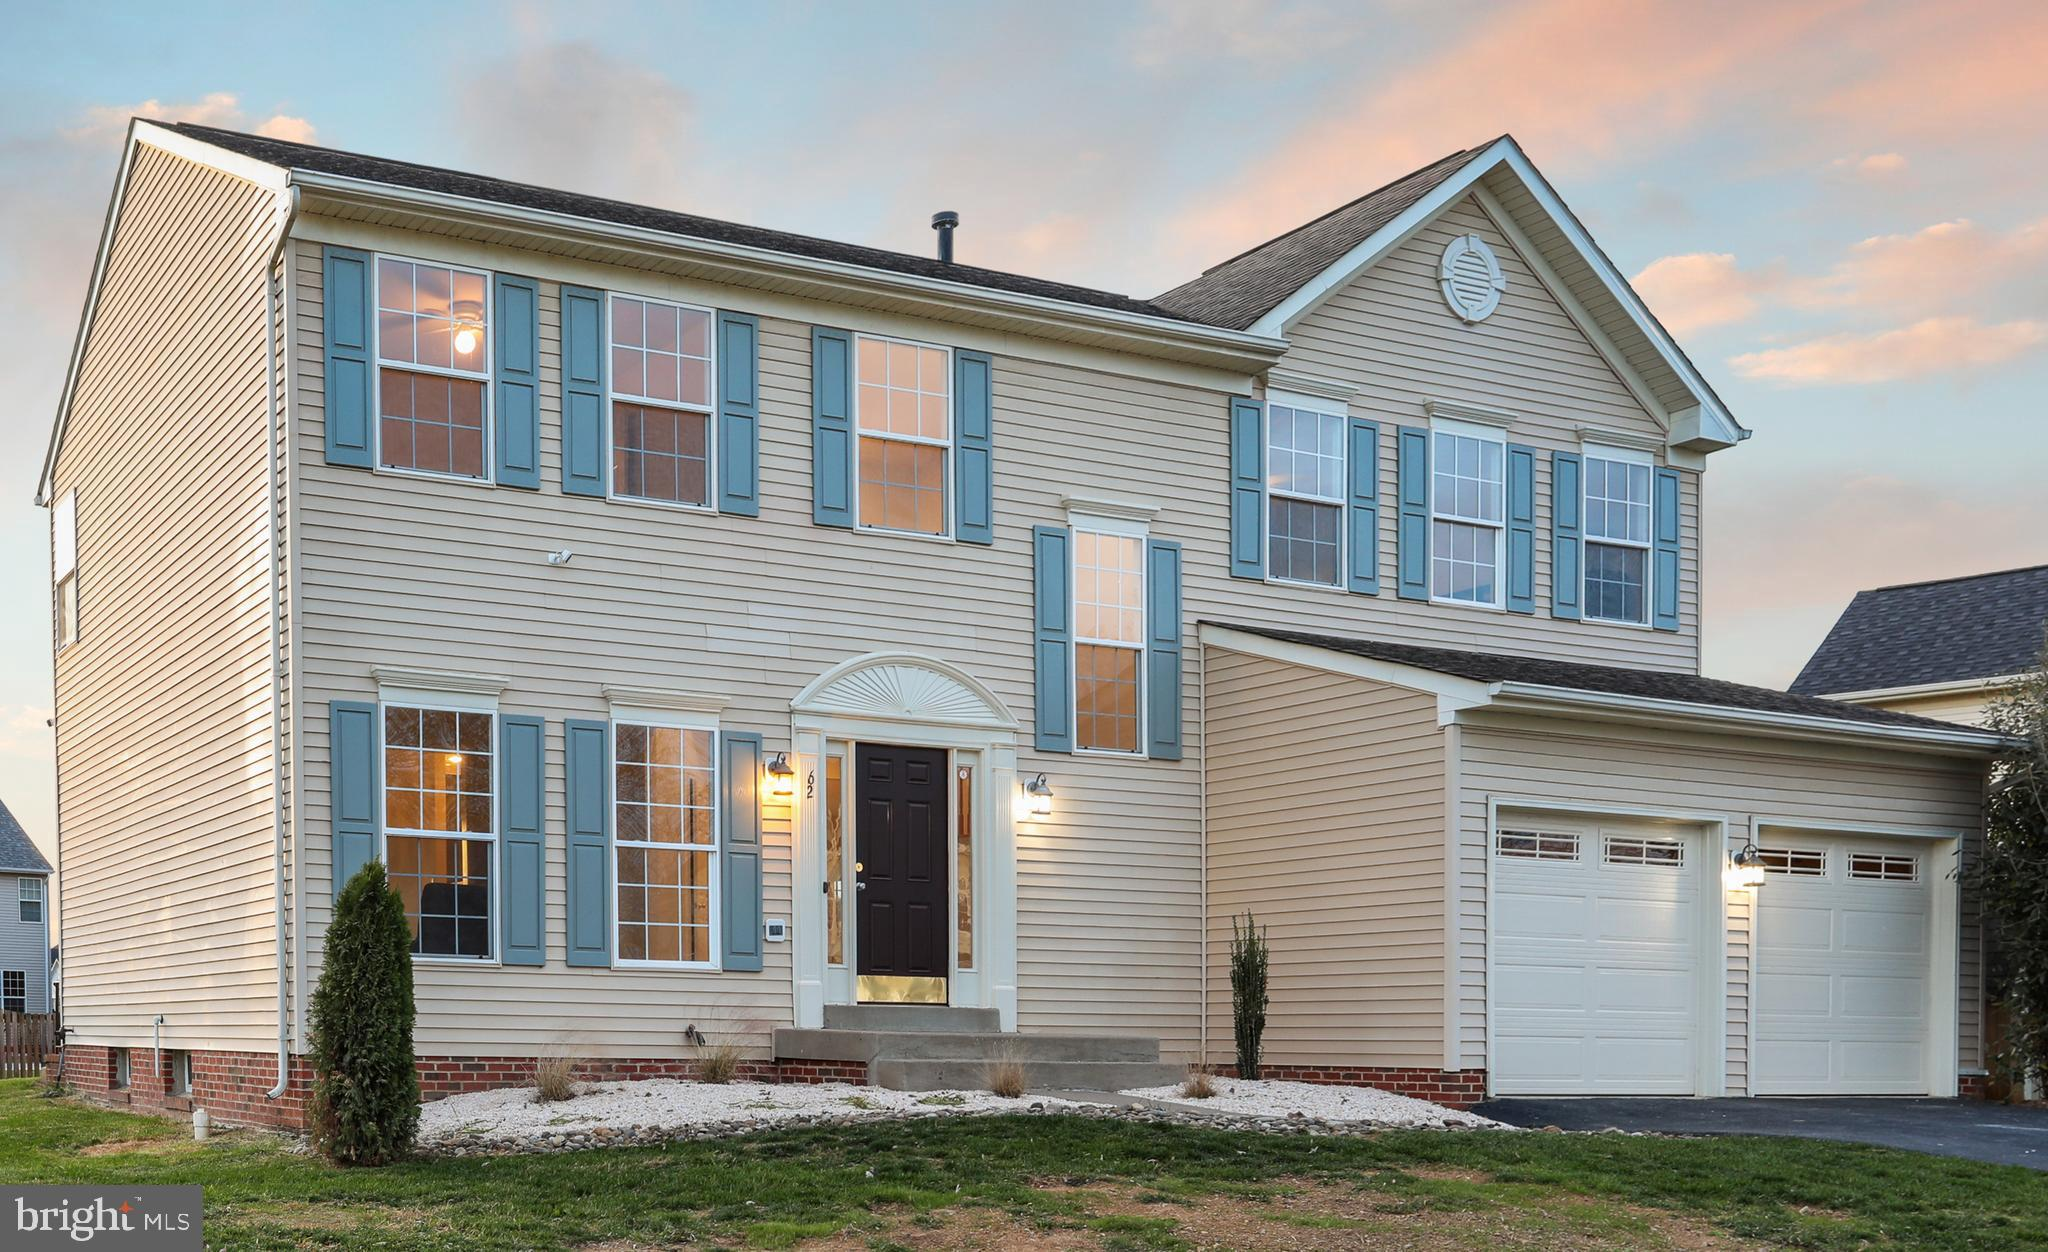 4 bedrooms and 3.5 bathrooms in the Locust Hill Golf course community. Tile foyer and engineered bee